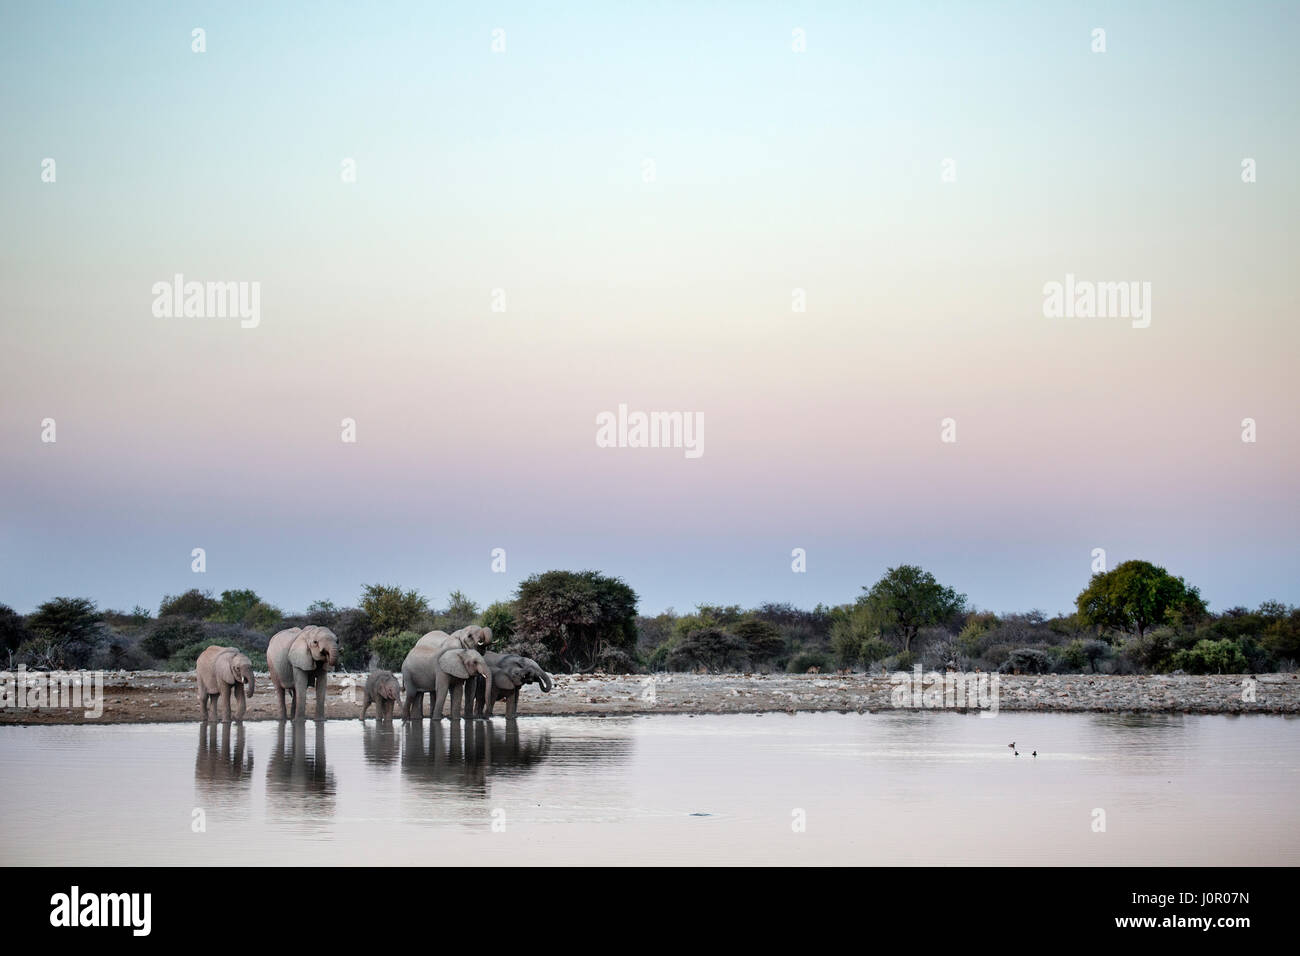 Elephant herd at a water hole - Stock Image